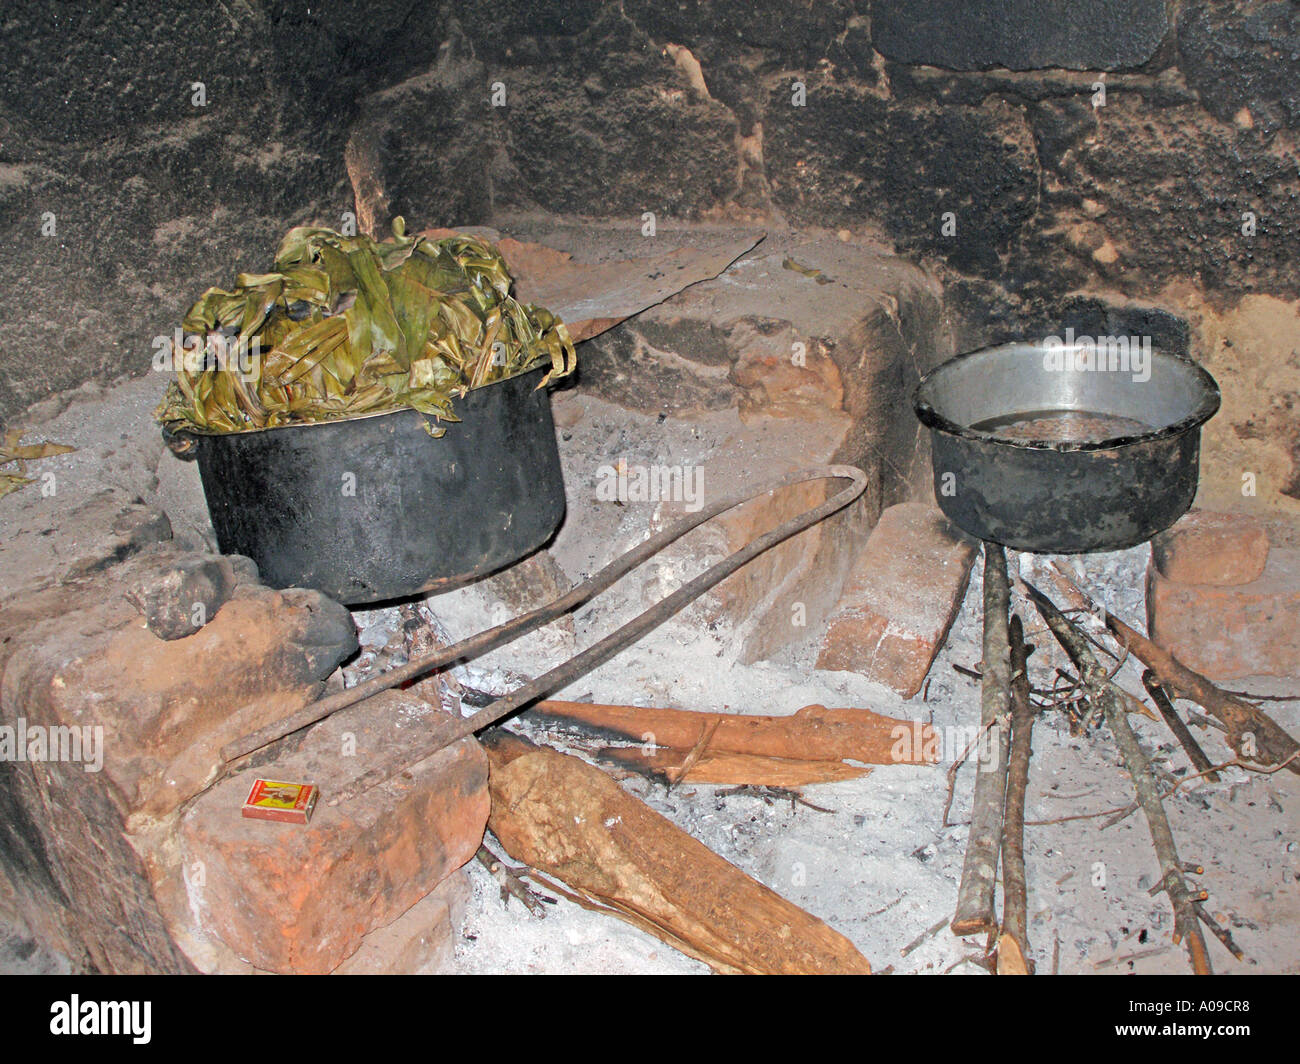 Cooking on firewood - Stock Image